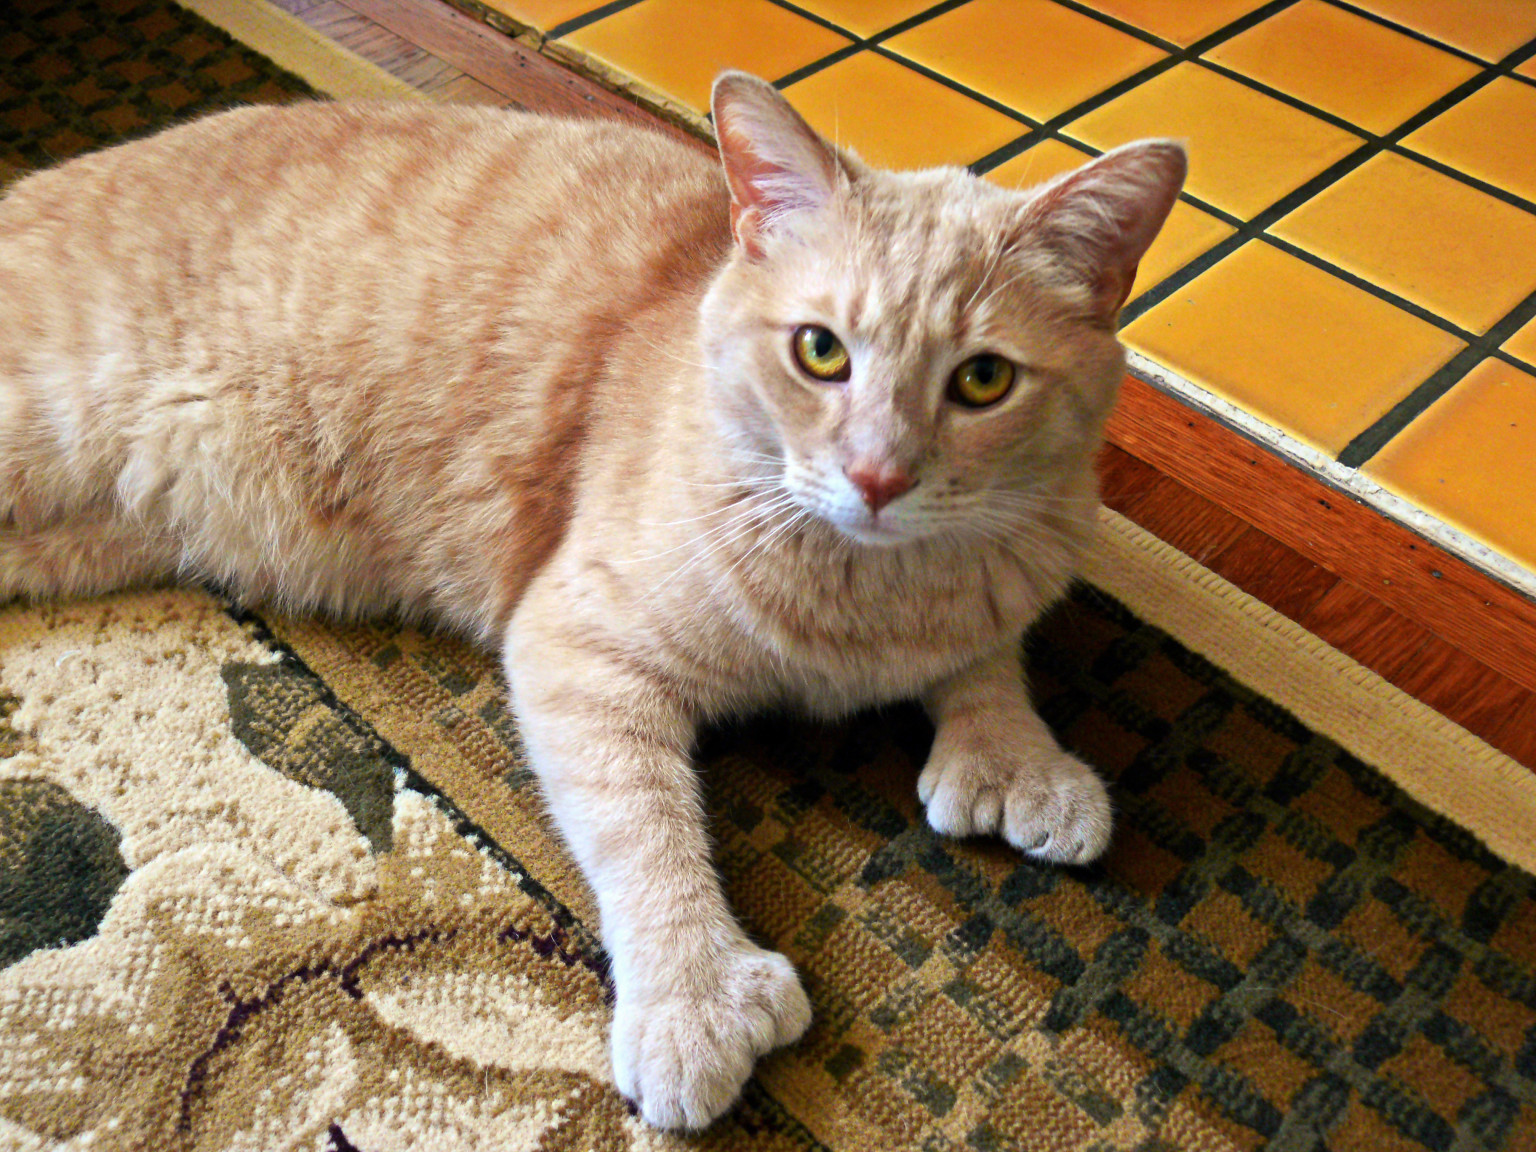 polydactyl cats the felines with extra toes